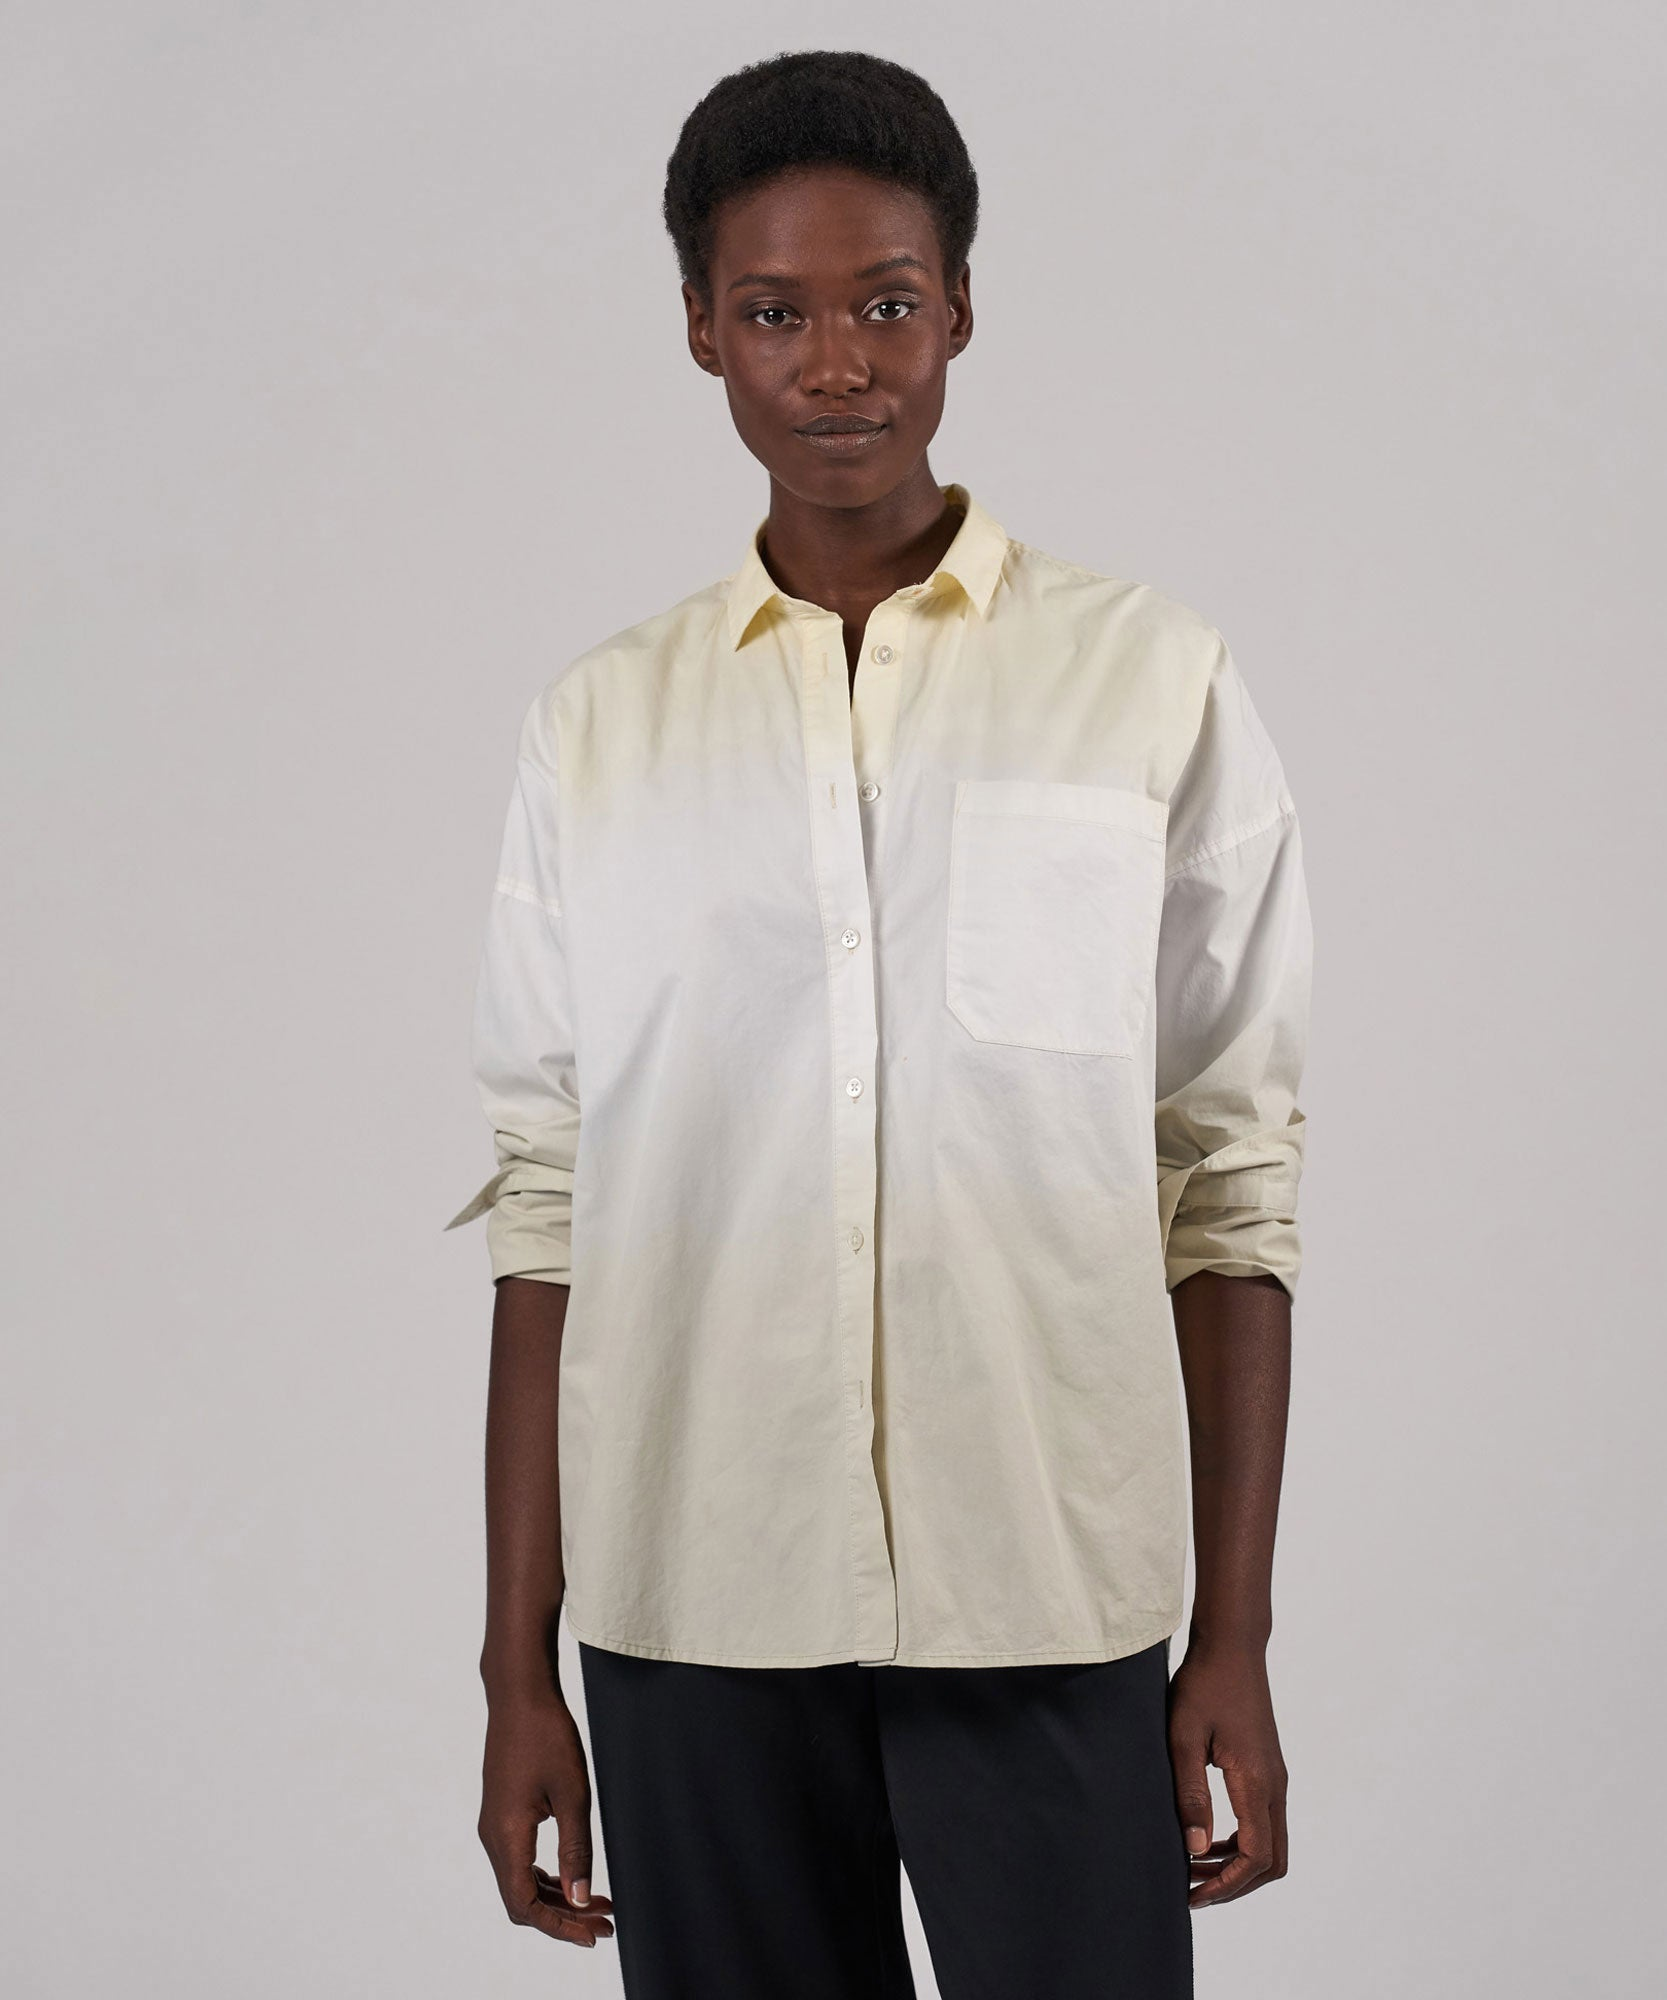 Bakelite/ Talc/ Gesso Cotton Poplin Oversized Boyfriend Shirt - Women's Button Down Shirt by ATM Anthony Thomas Melillo